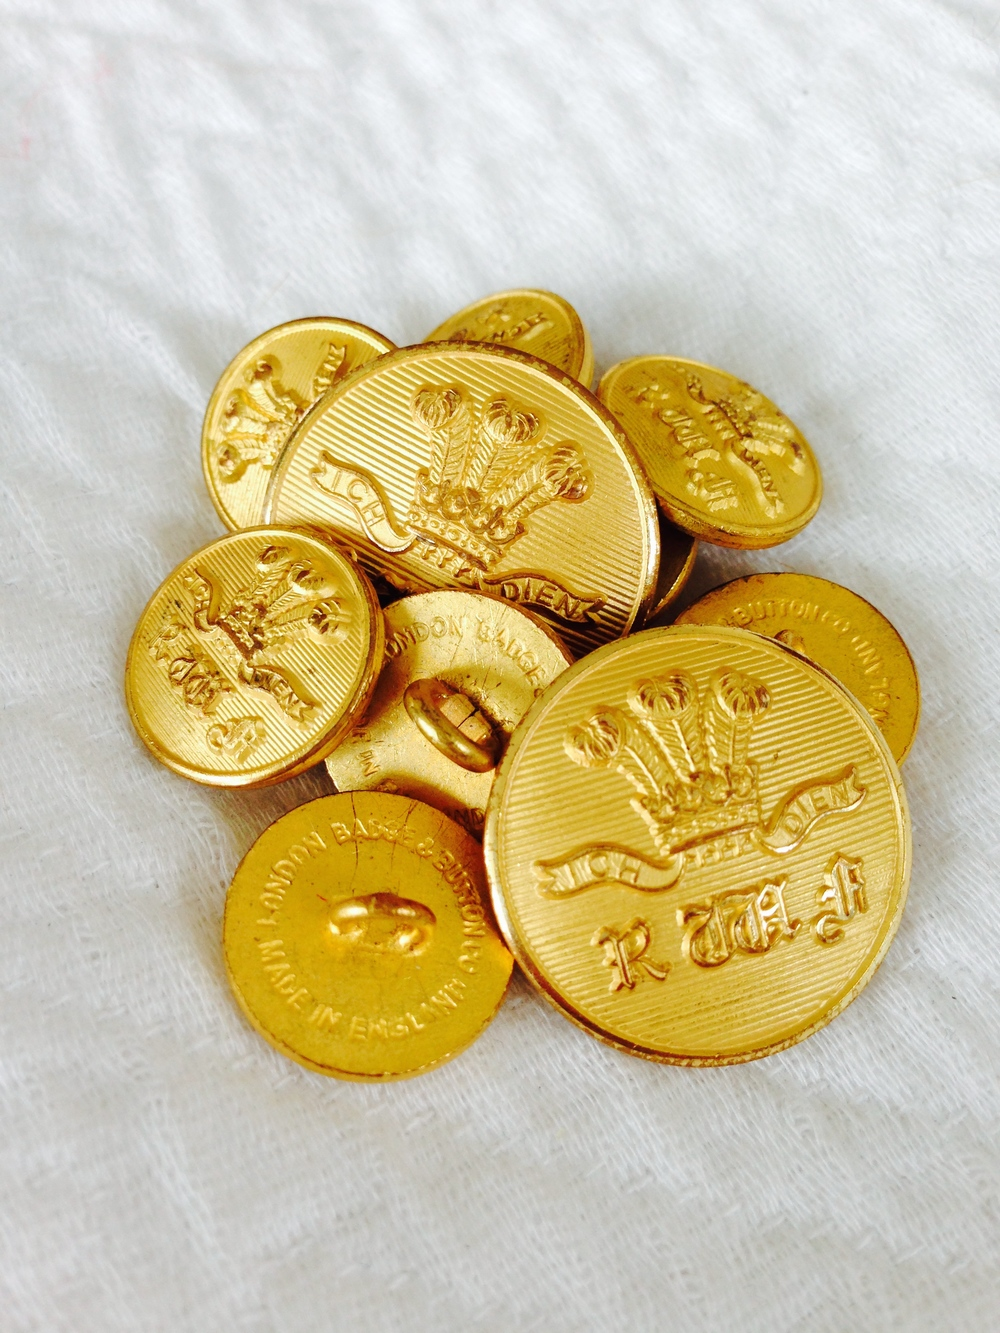 These Royal Welsh Fusiliers blazer buttons are lovely, but not suitable for civilian wear. Beware military and club associations to which you aren't entitled.